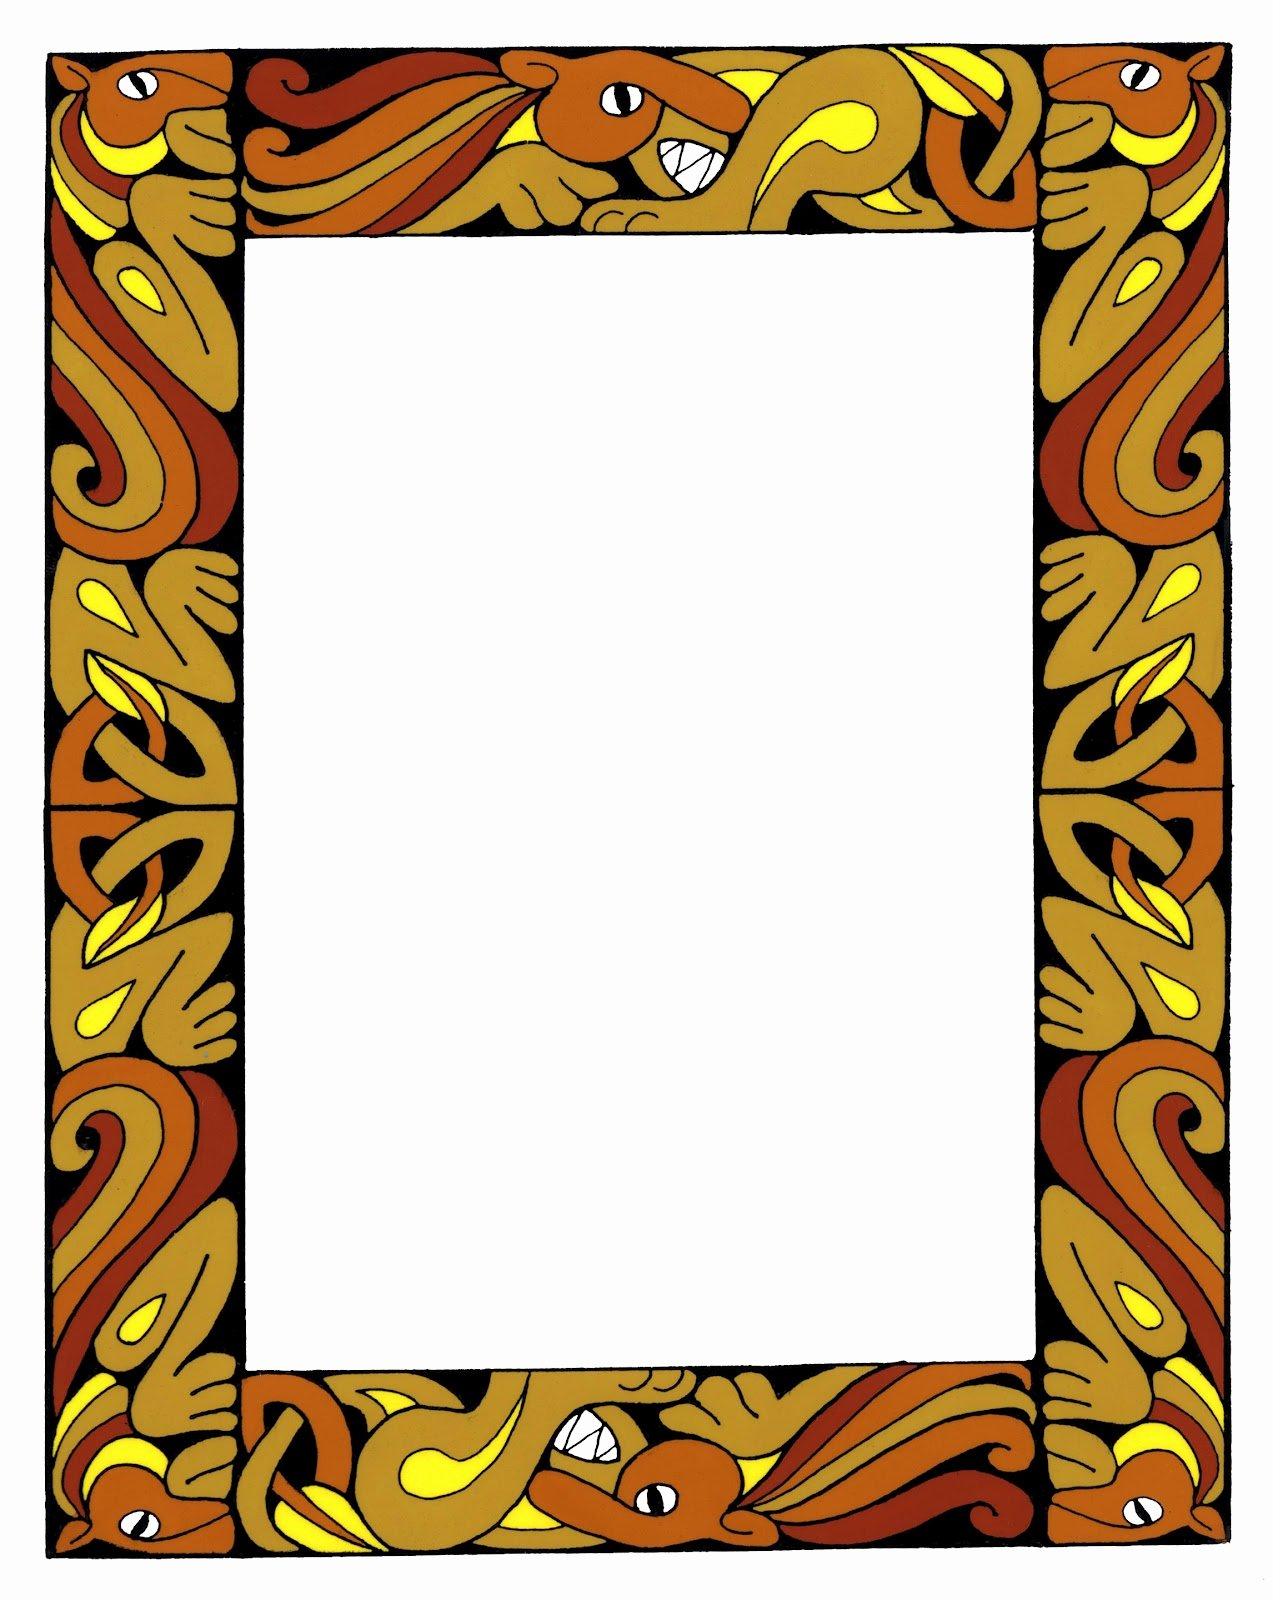 Free Printable Western Borders Luxury Western Clip Art Borders Free Clipart Library